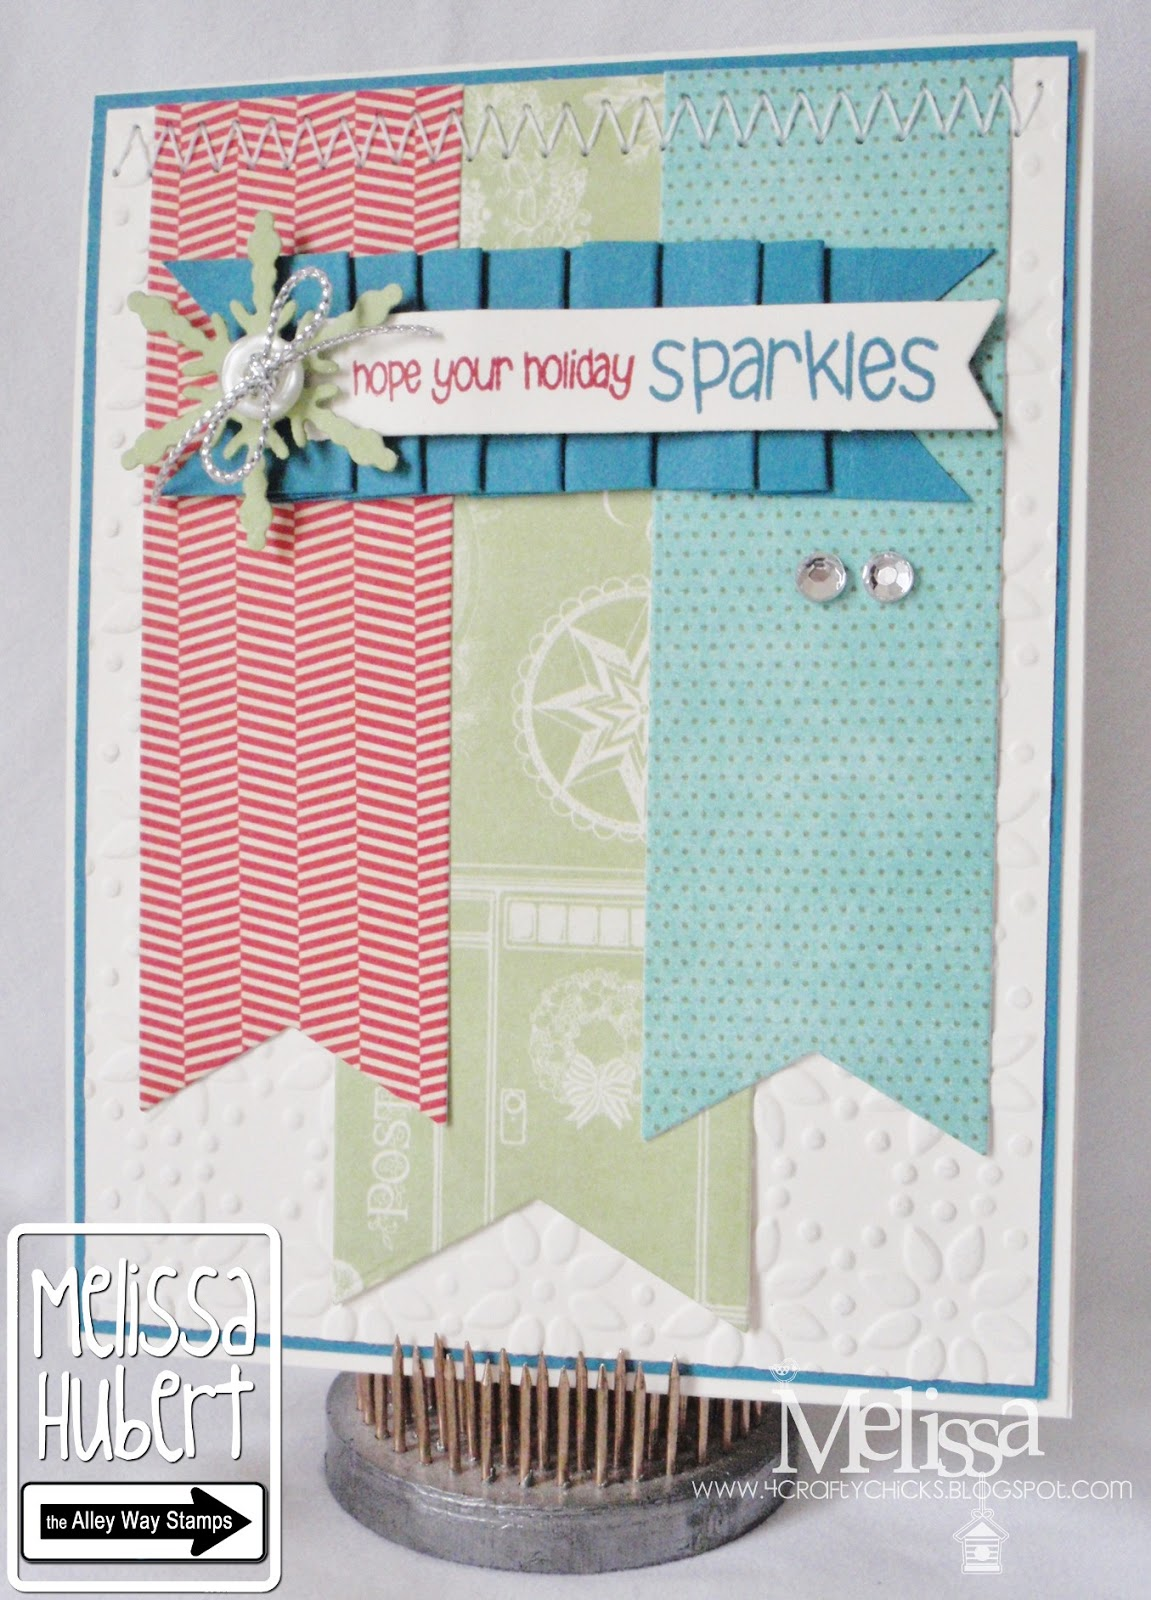 The Alley Way Stamps: Sparkle~y Thursday Wishes!